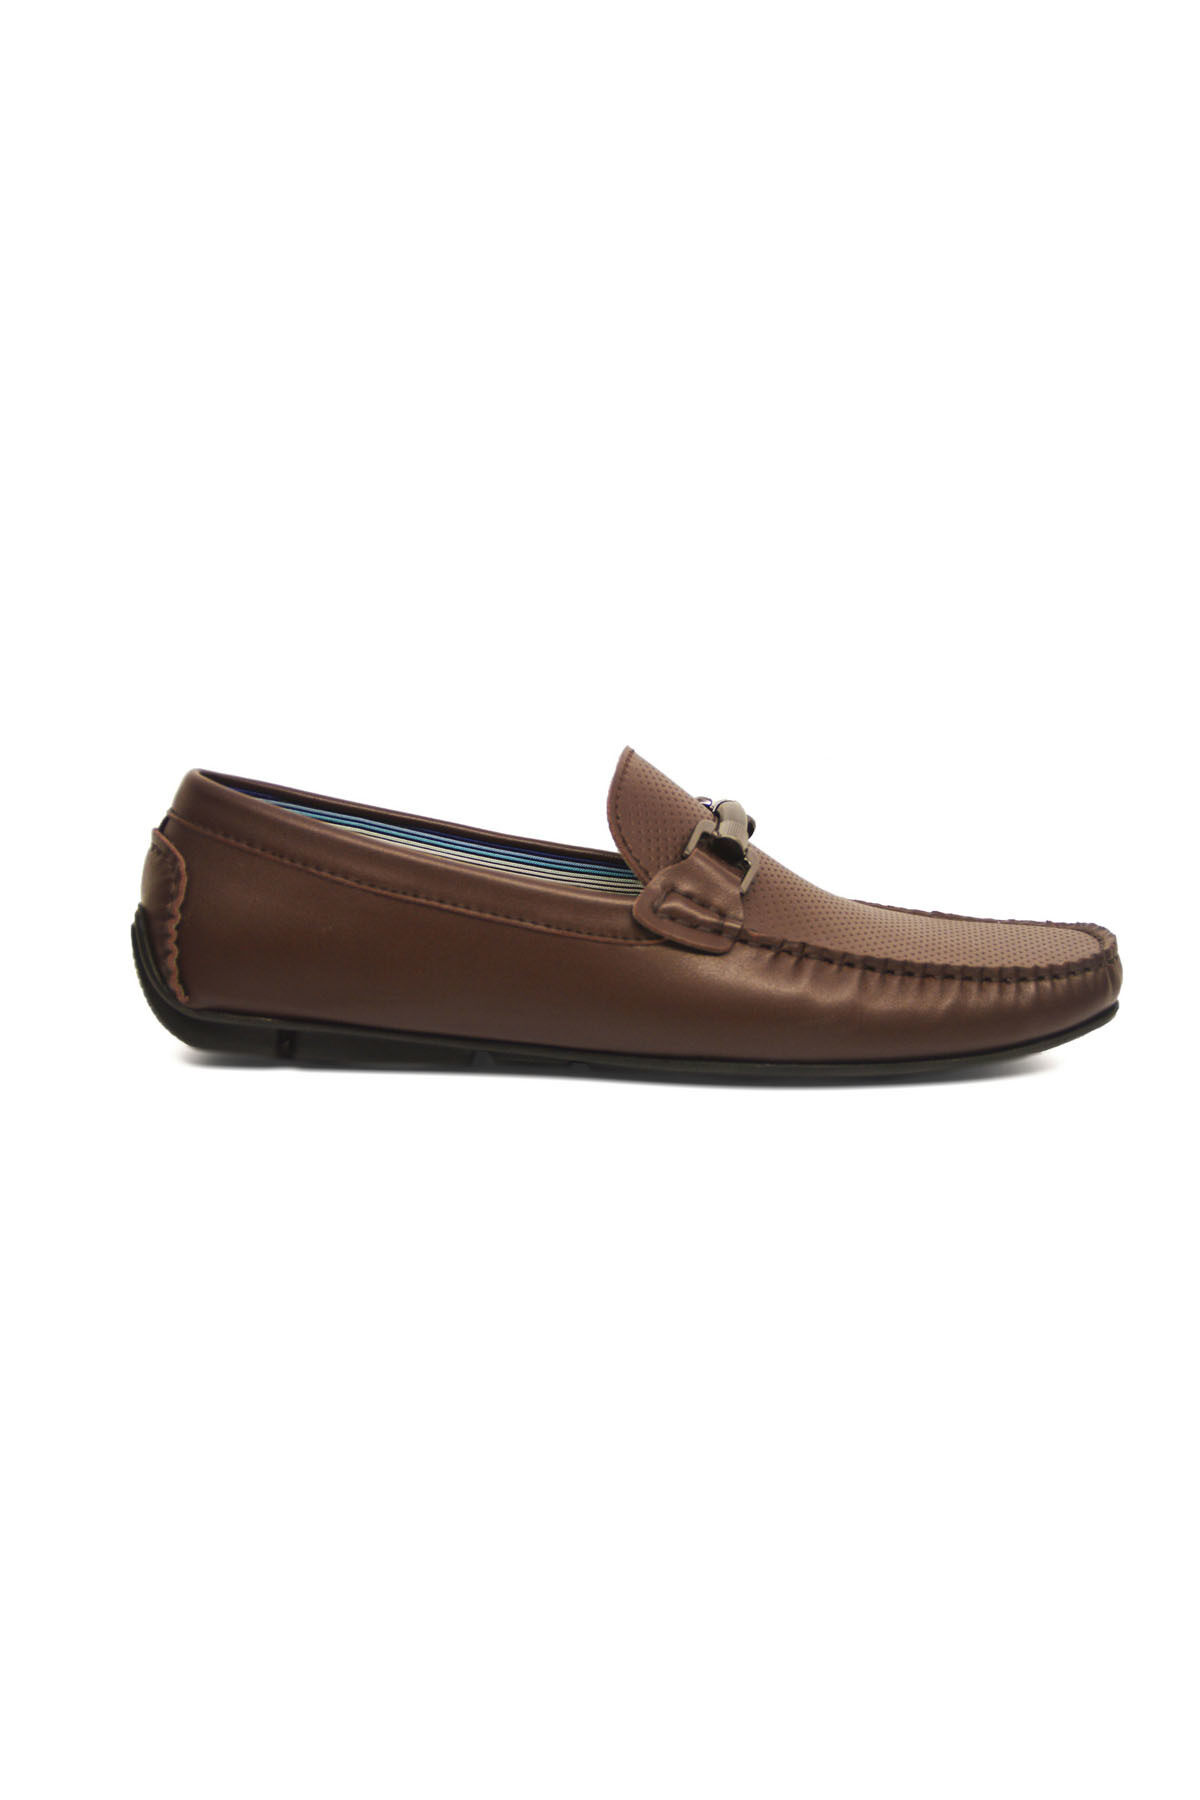 Tomaz C142 Buckled LeatherLoafers